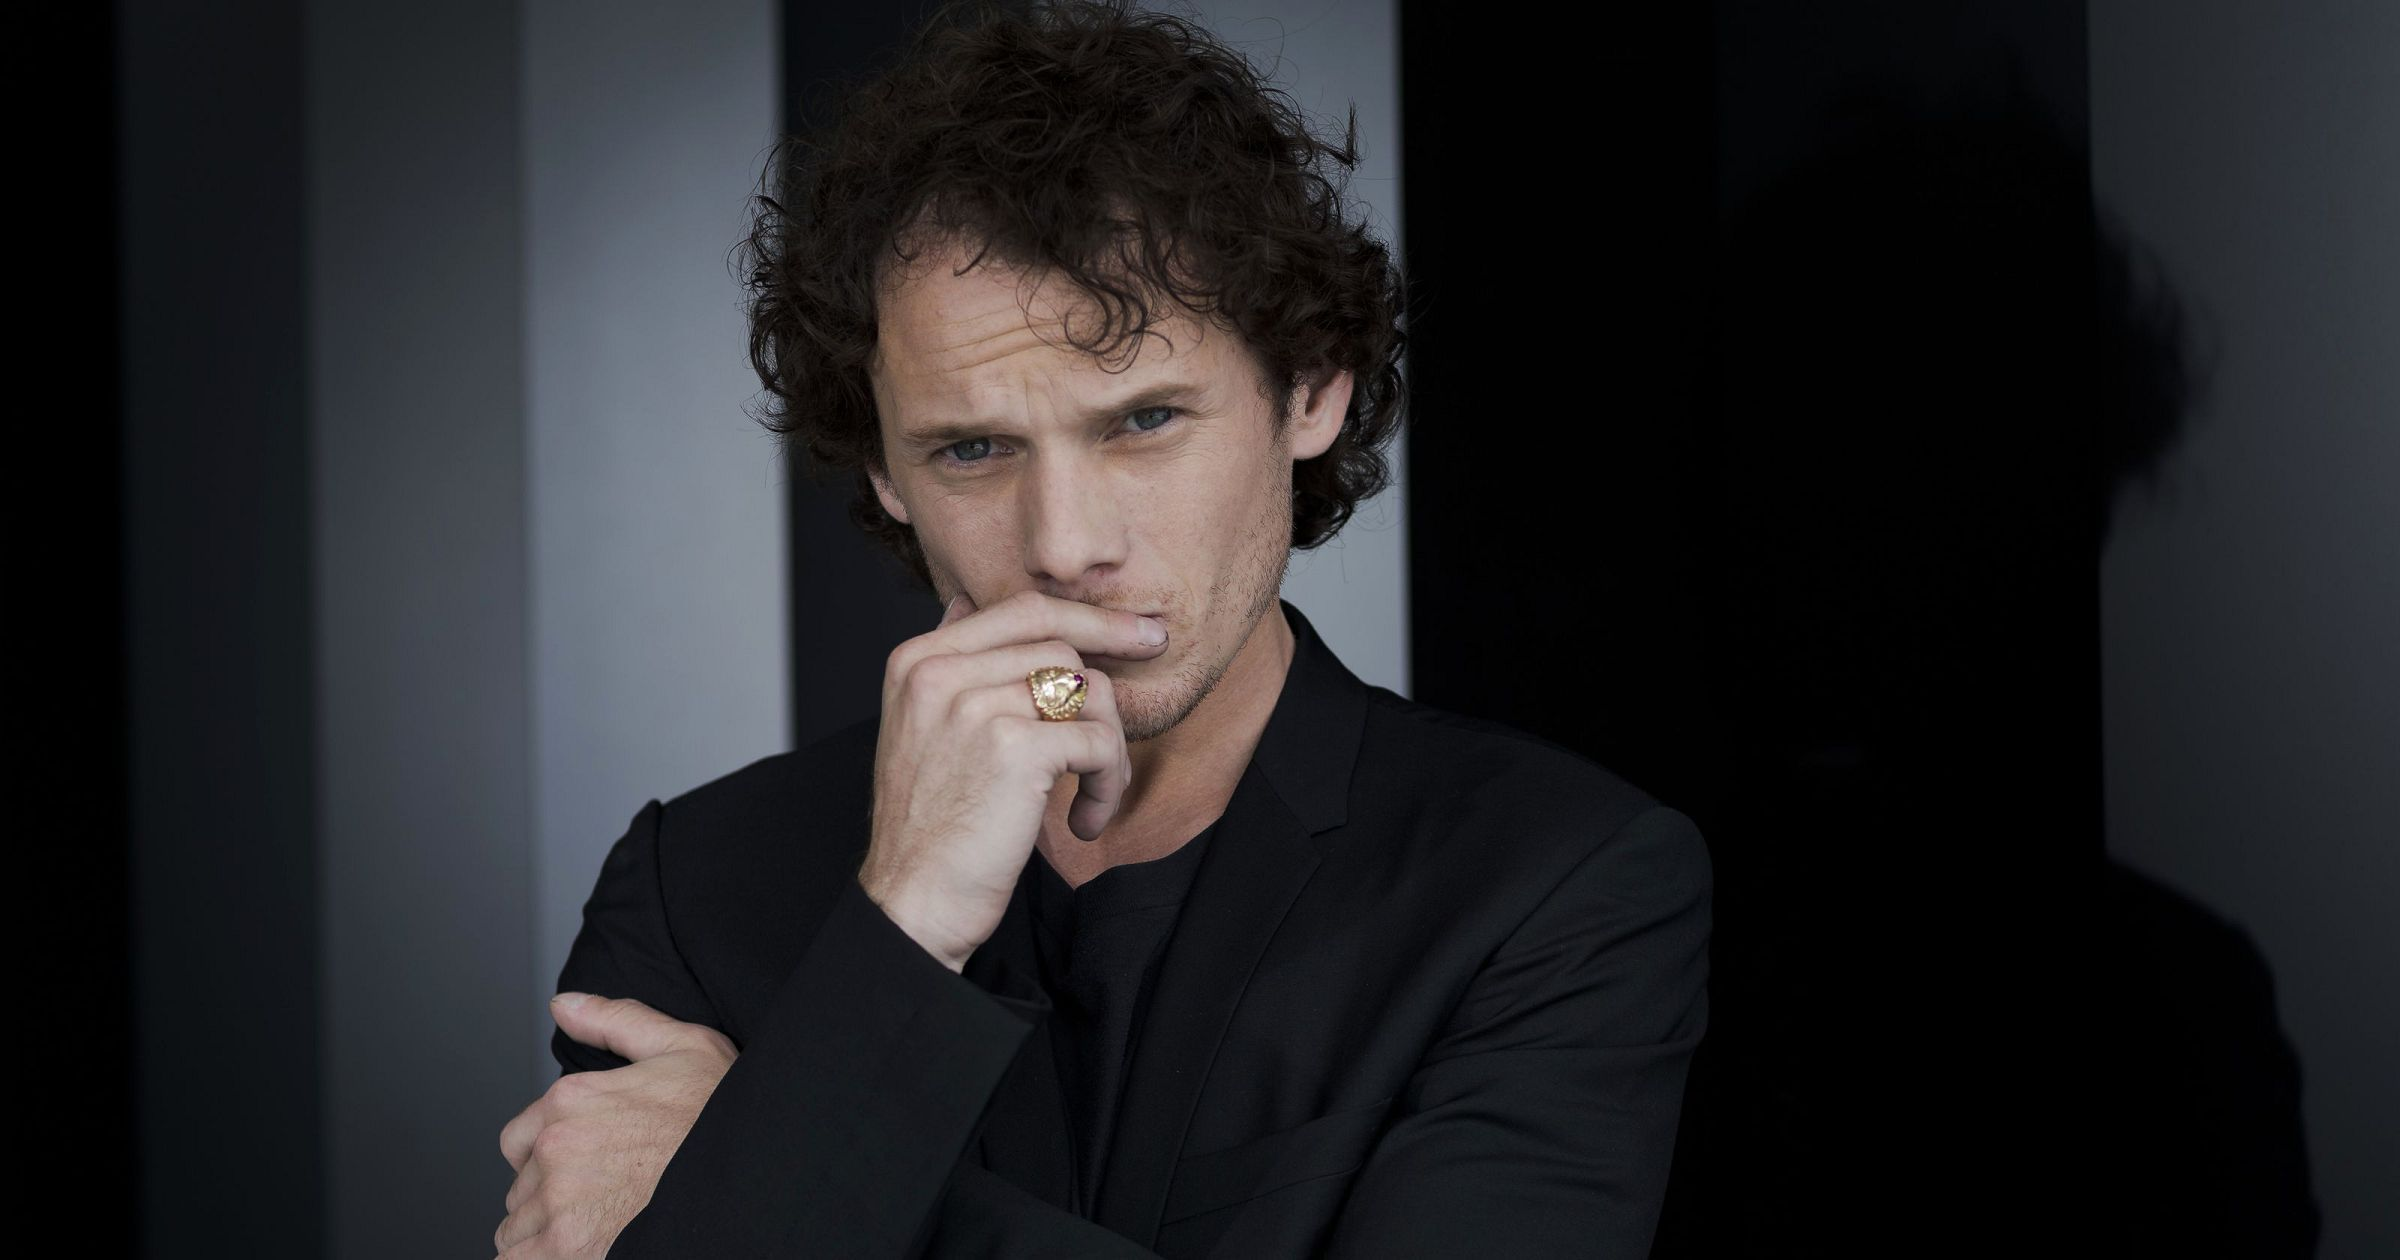 Anton Yelchin Wallpapers HD